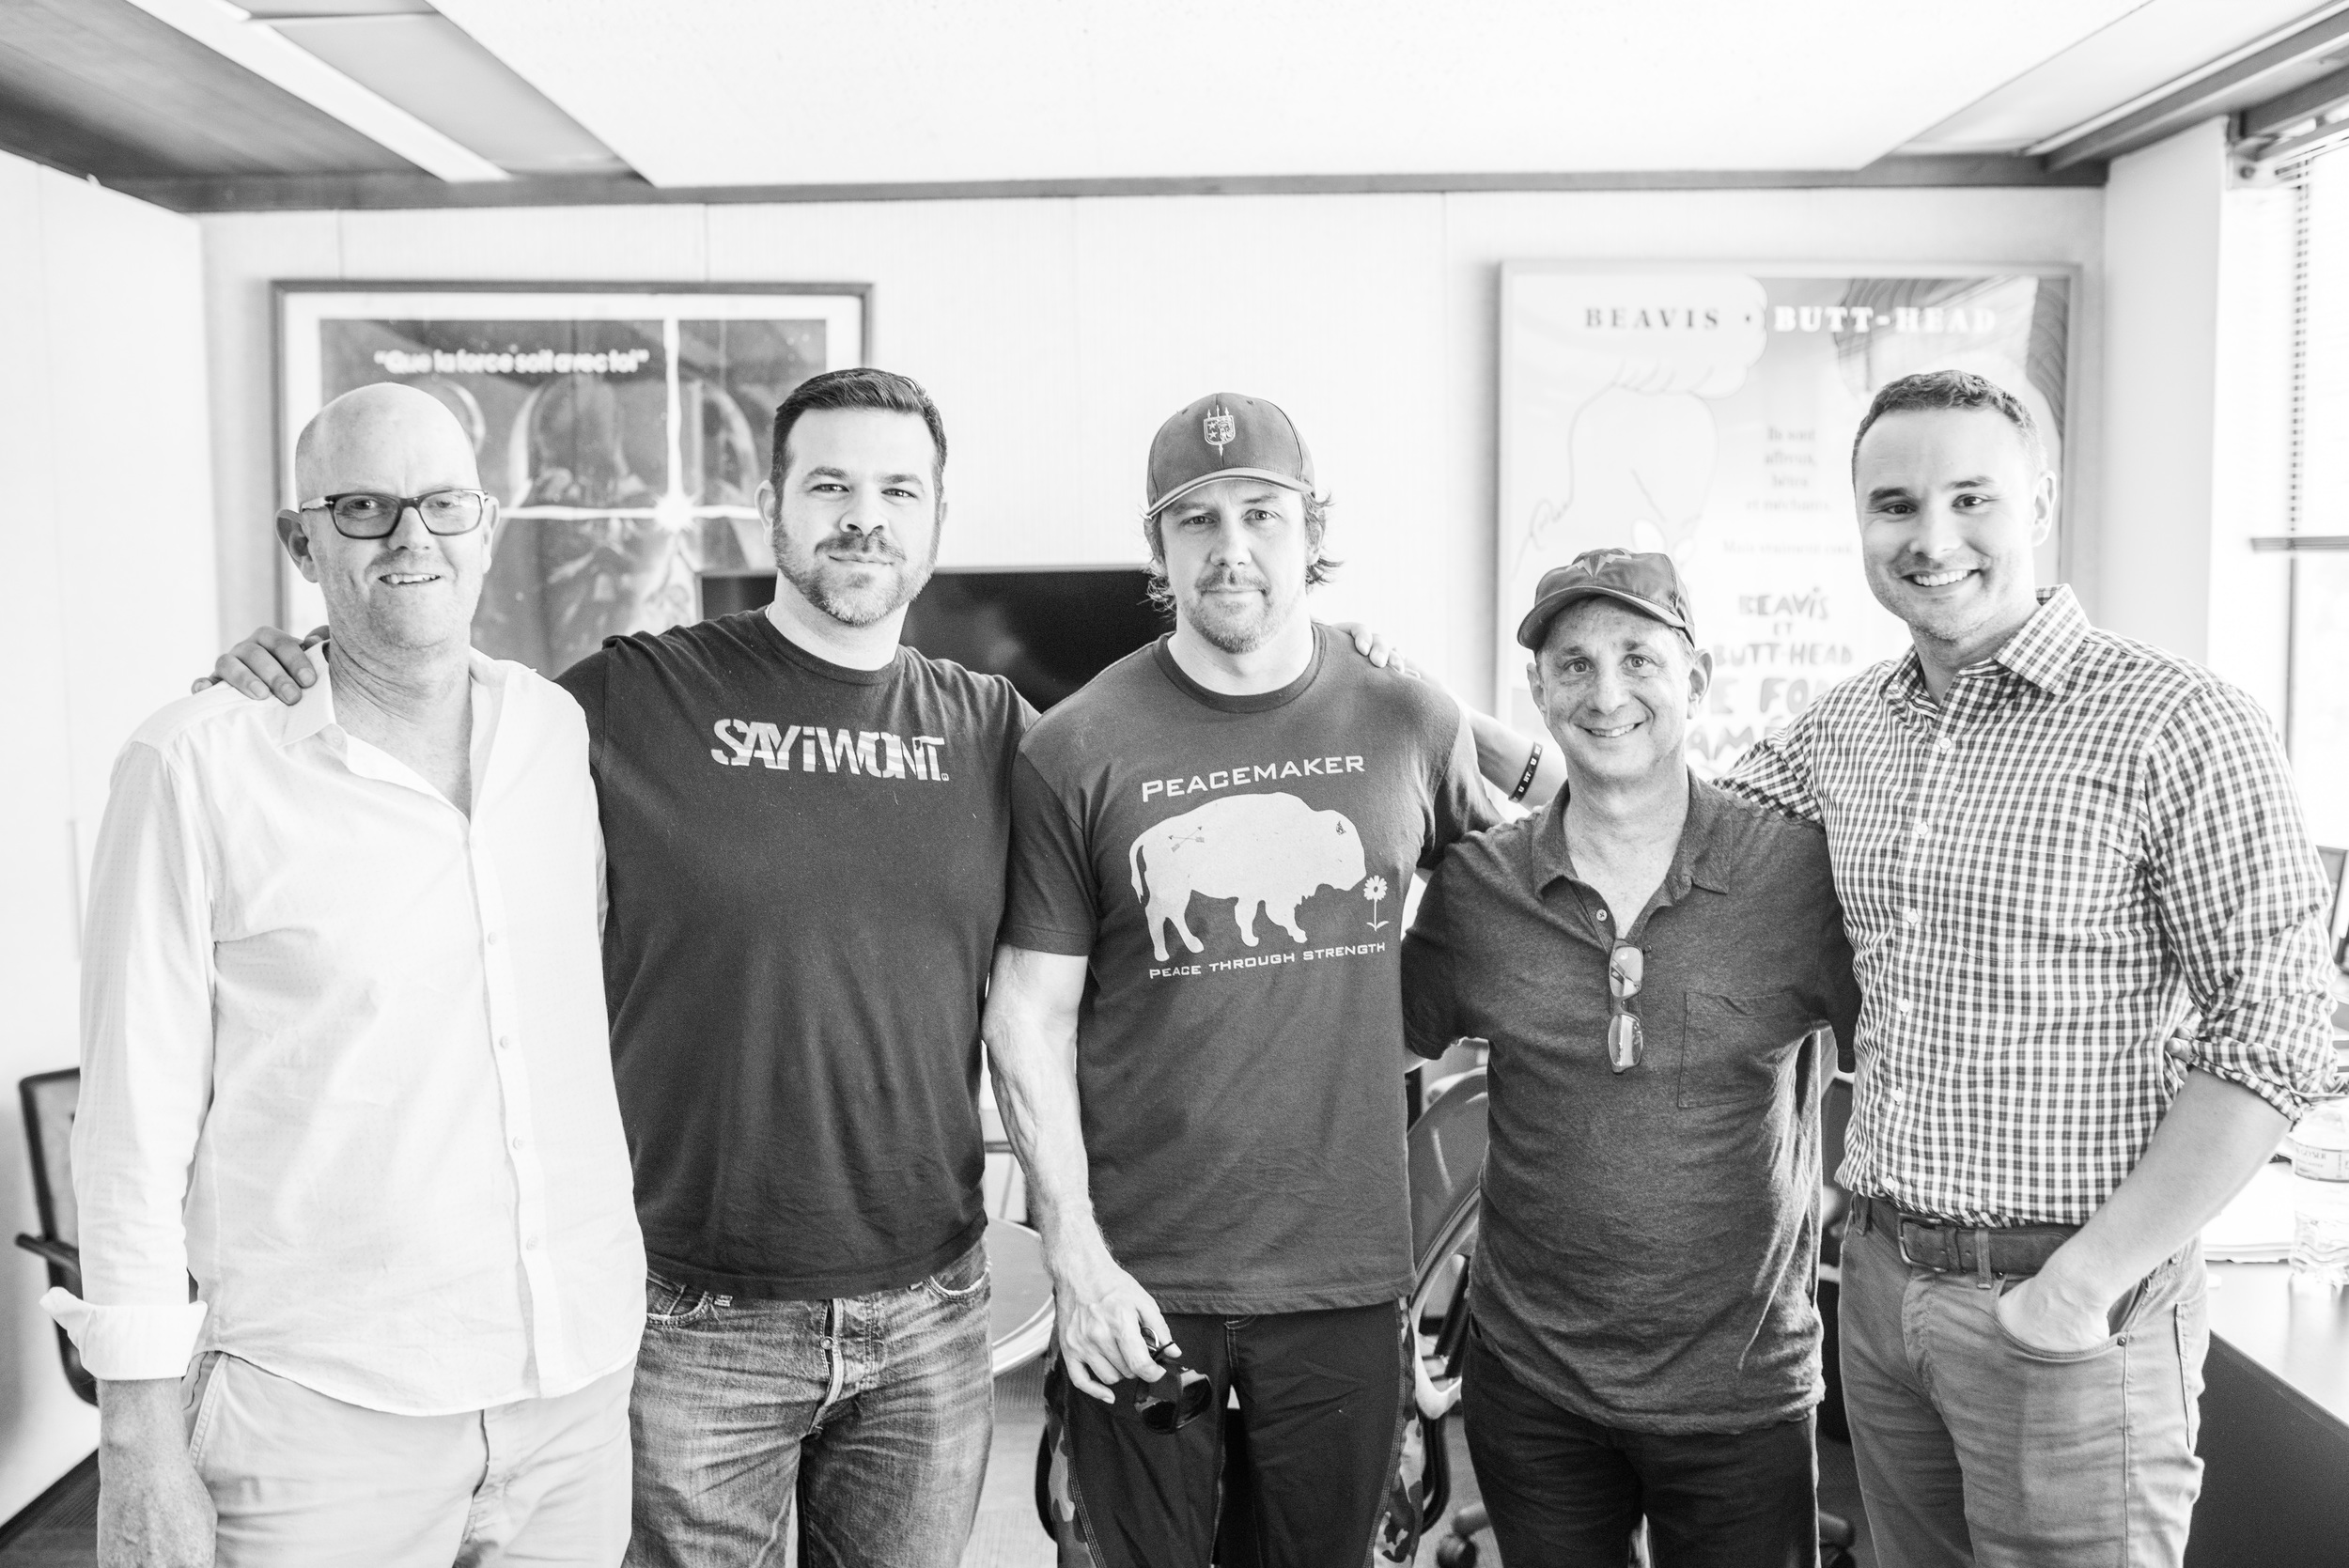 Tyler with (from left to right) David Harden (Board of Directors, We Are the Mighty), Mike Dowling, David Gale (CEO and Co-Founder of We Are the Mighty) and Mark Harper (SVP Creative and Business Development, We Are the Mighty).